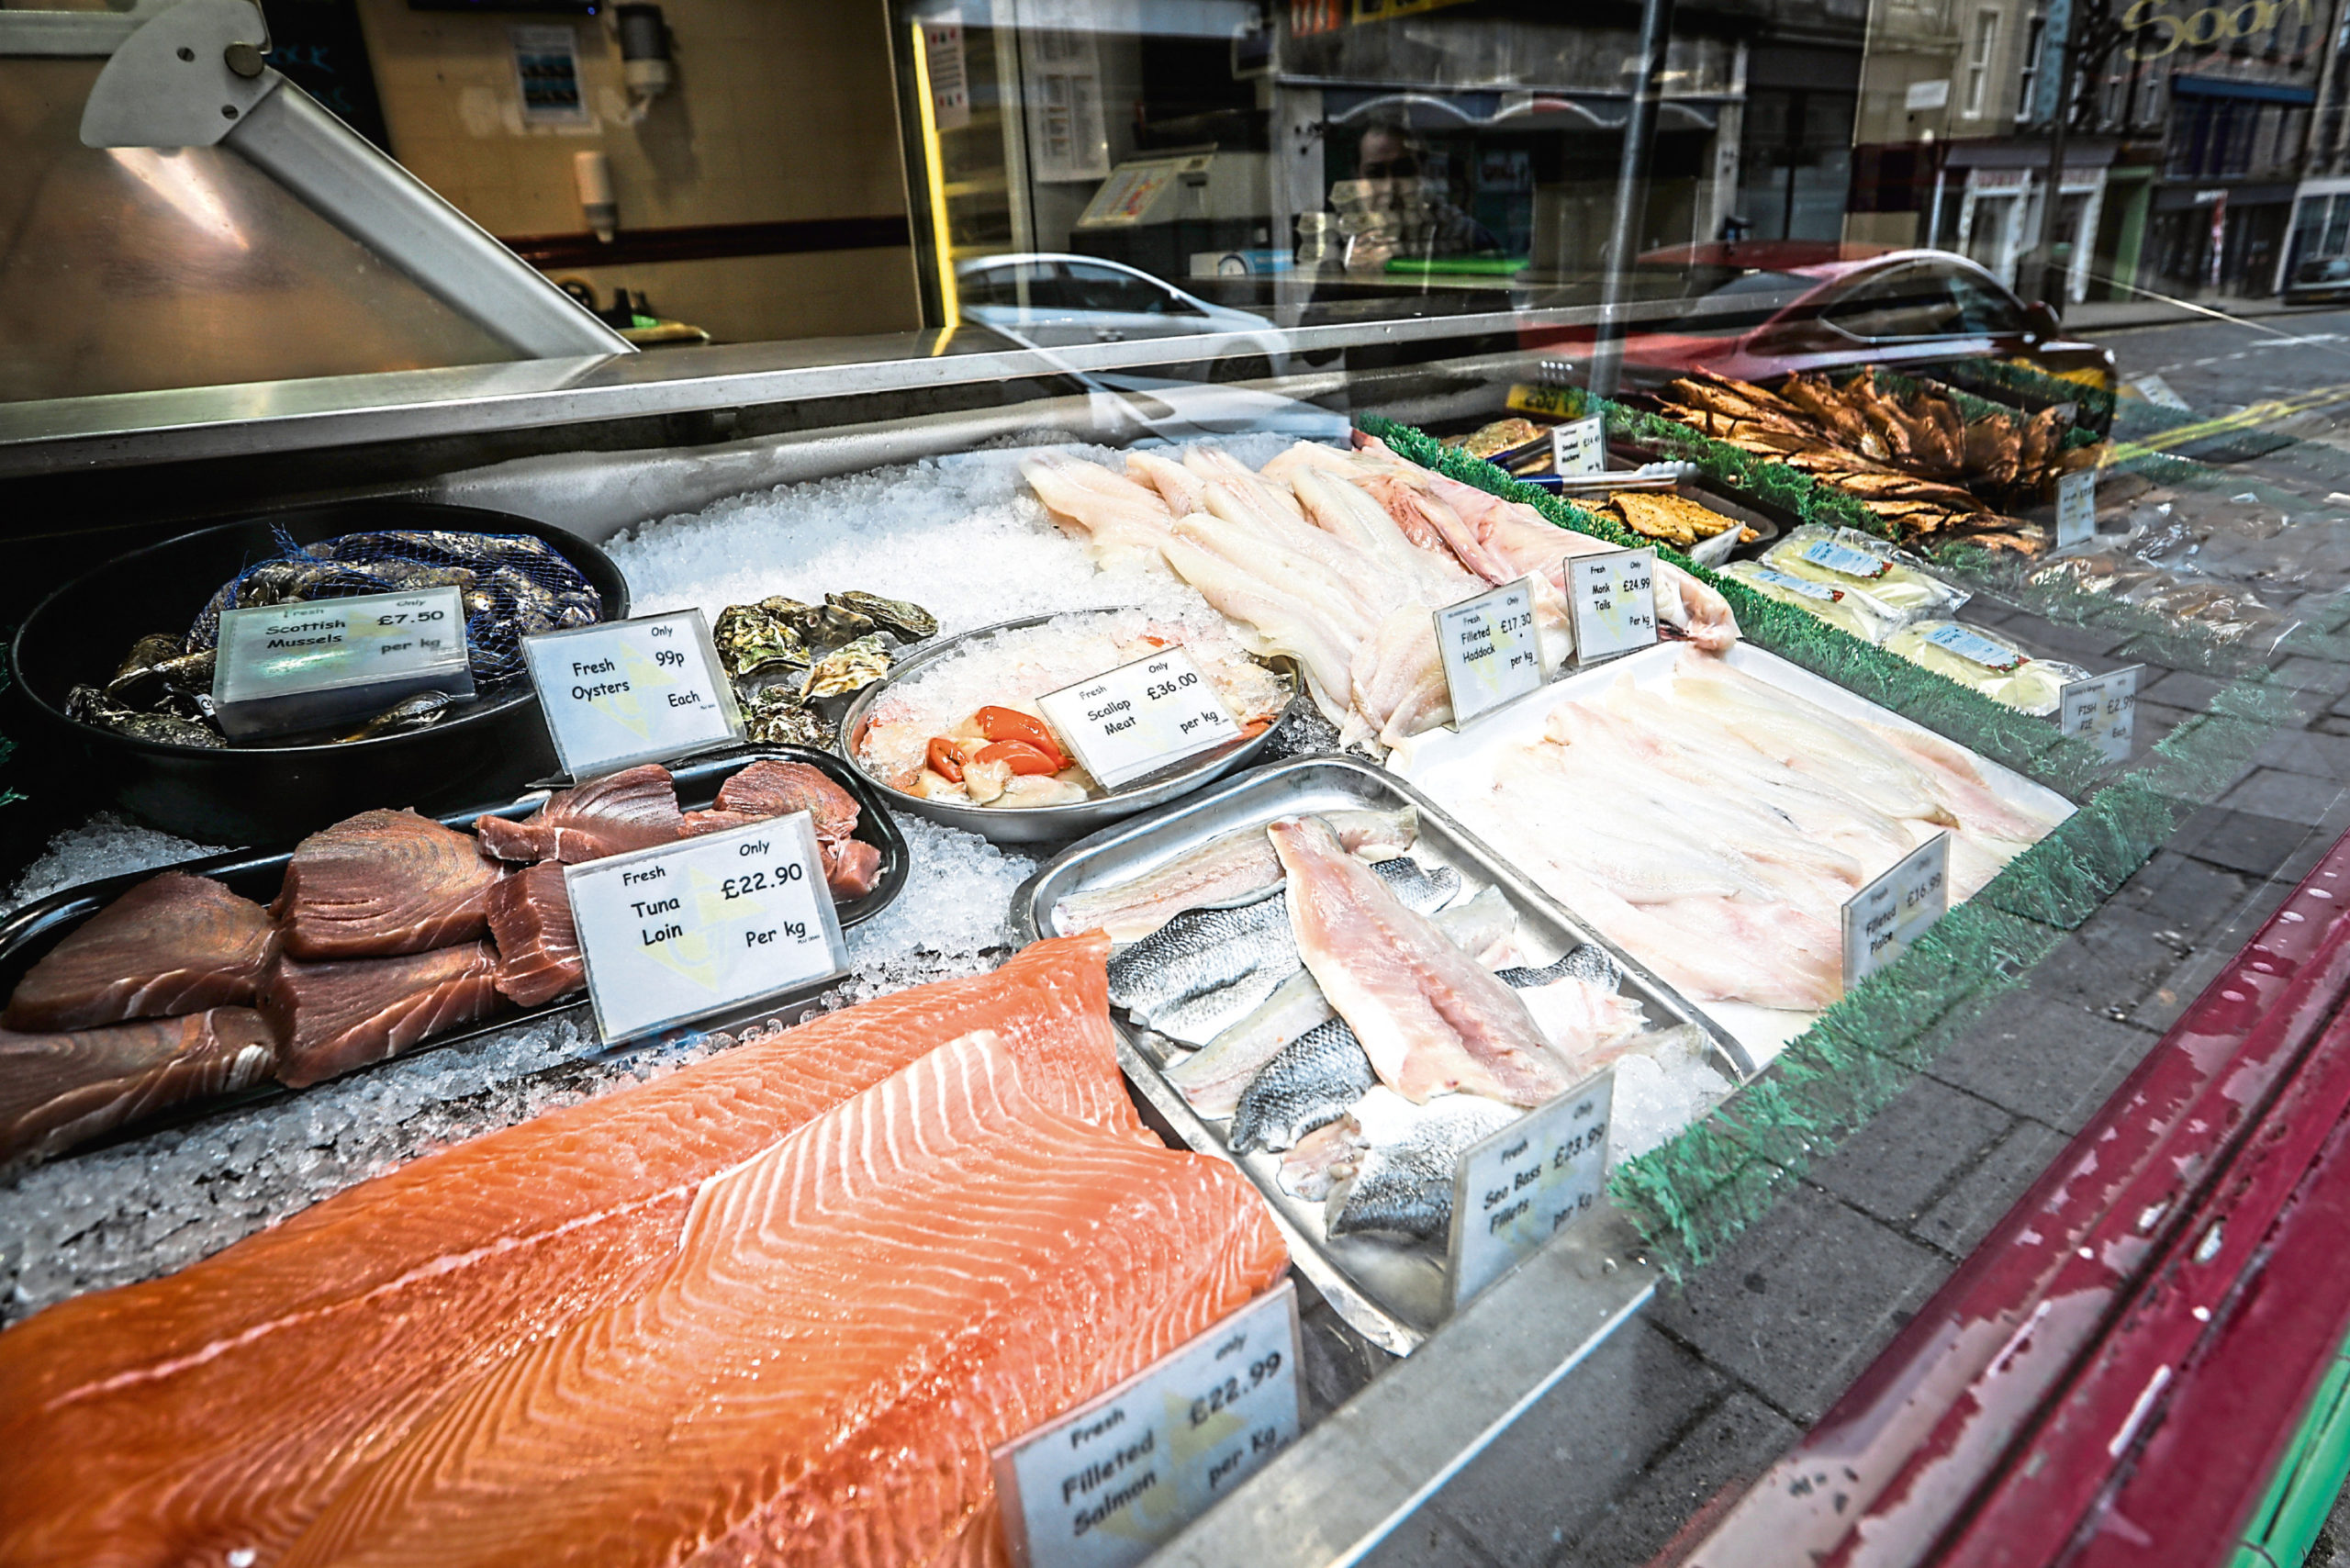 Seafood Scotland wants supermarkets to open their fish counters